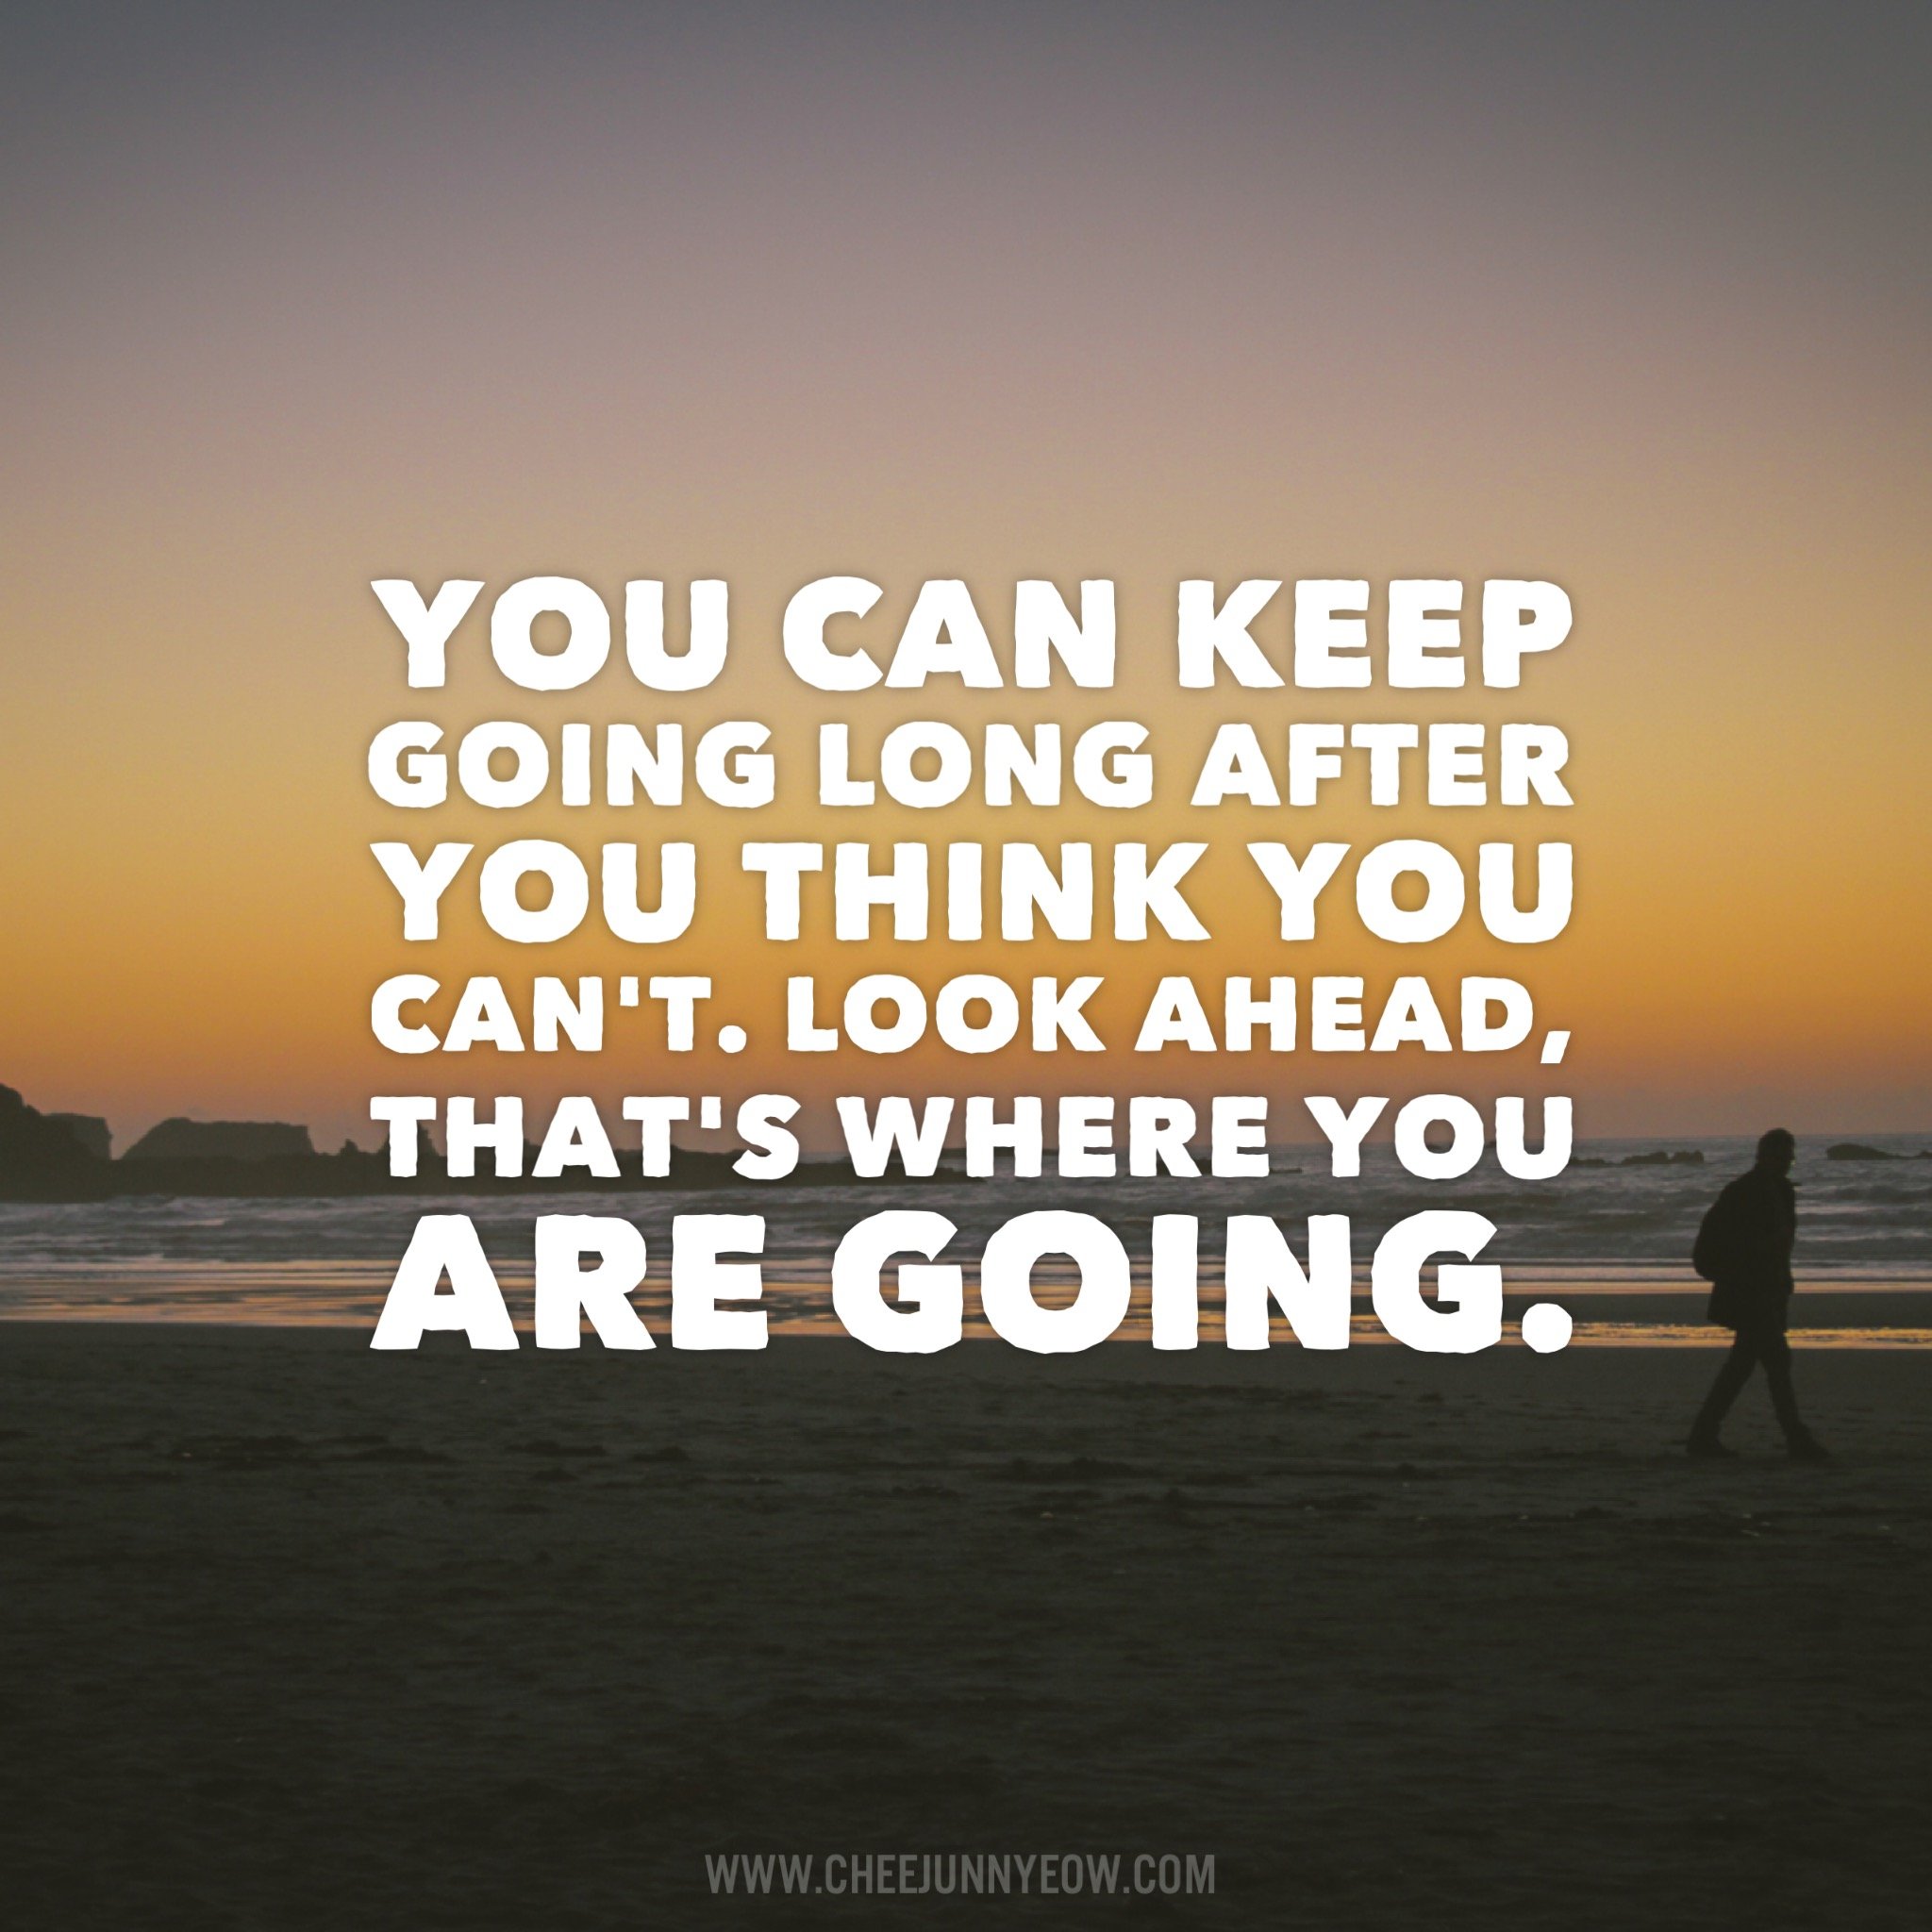 you can keep going long after you think you can't. look ahead, that's where you are going